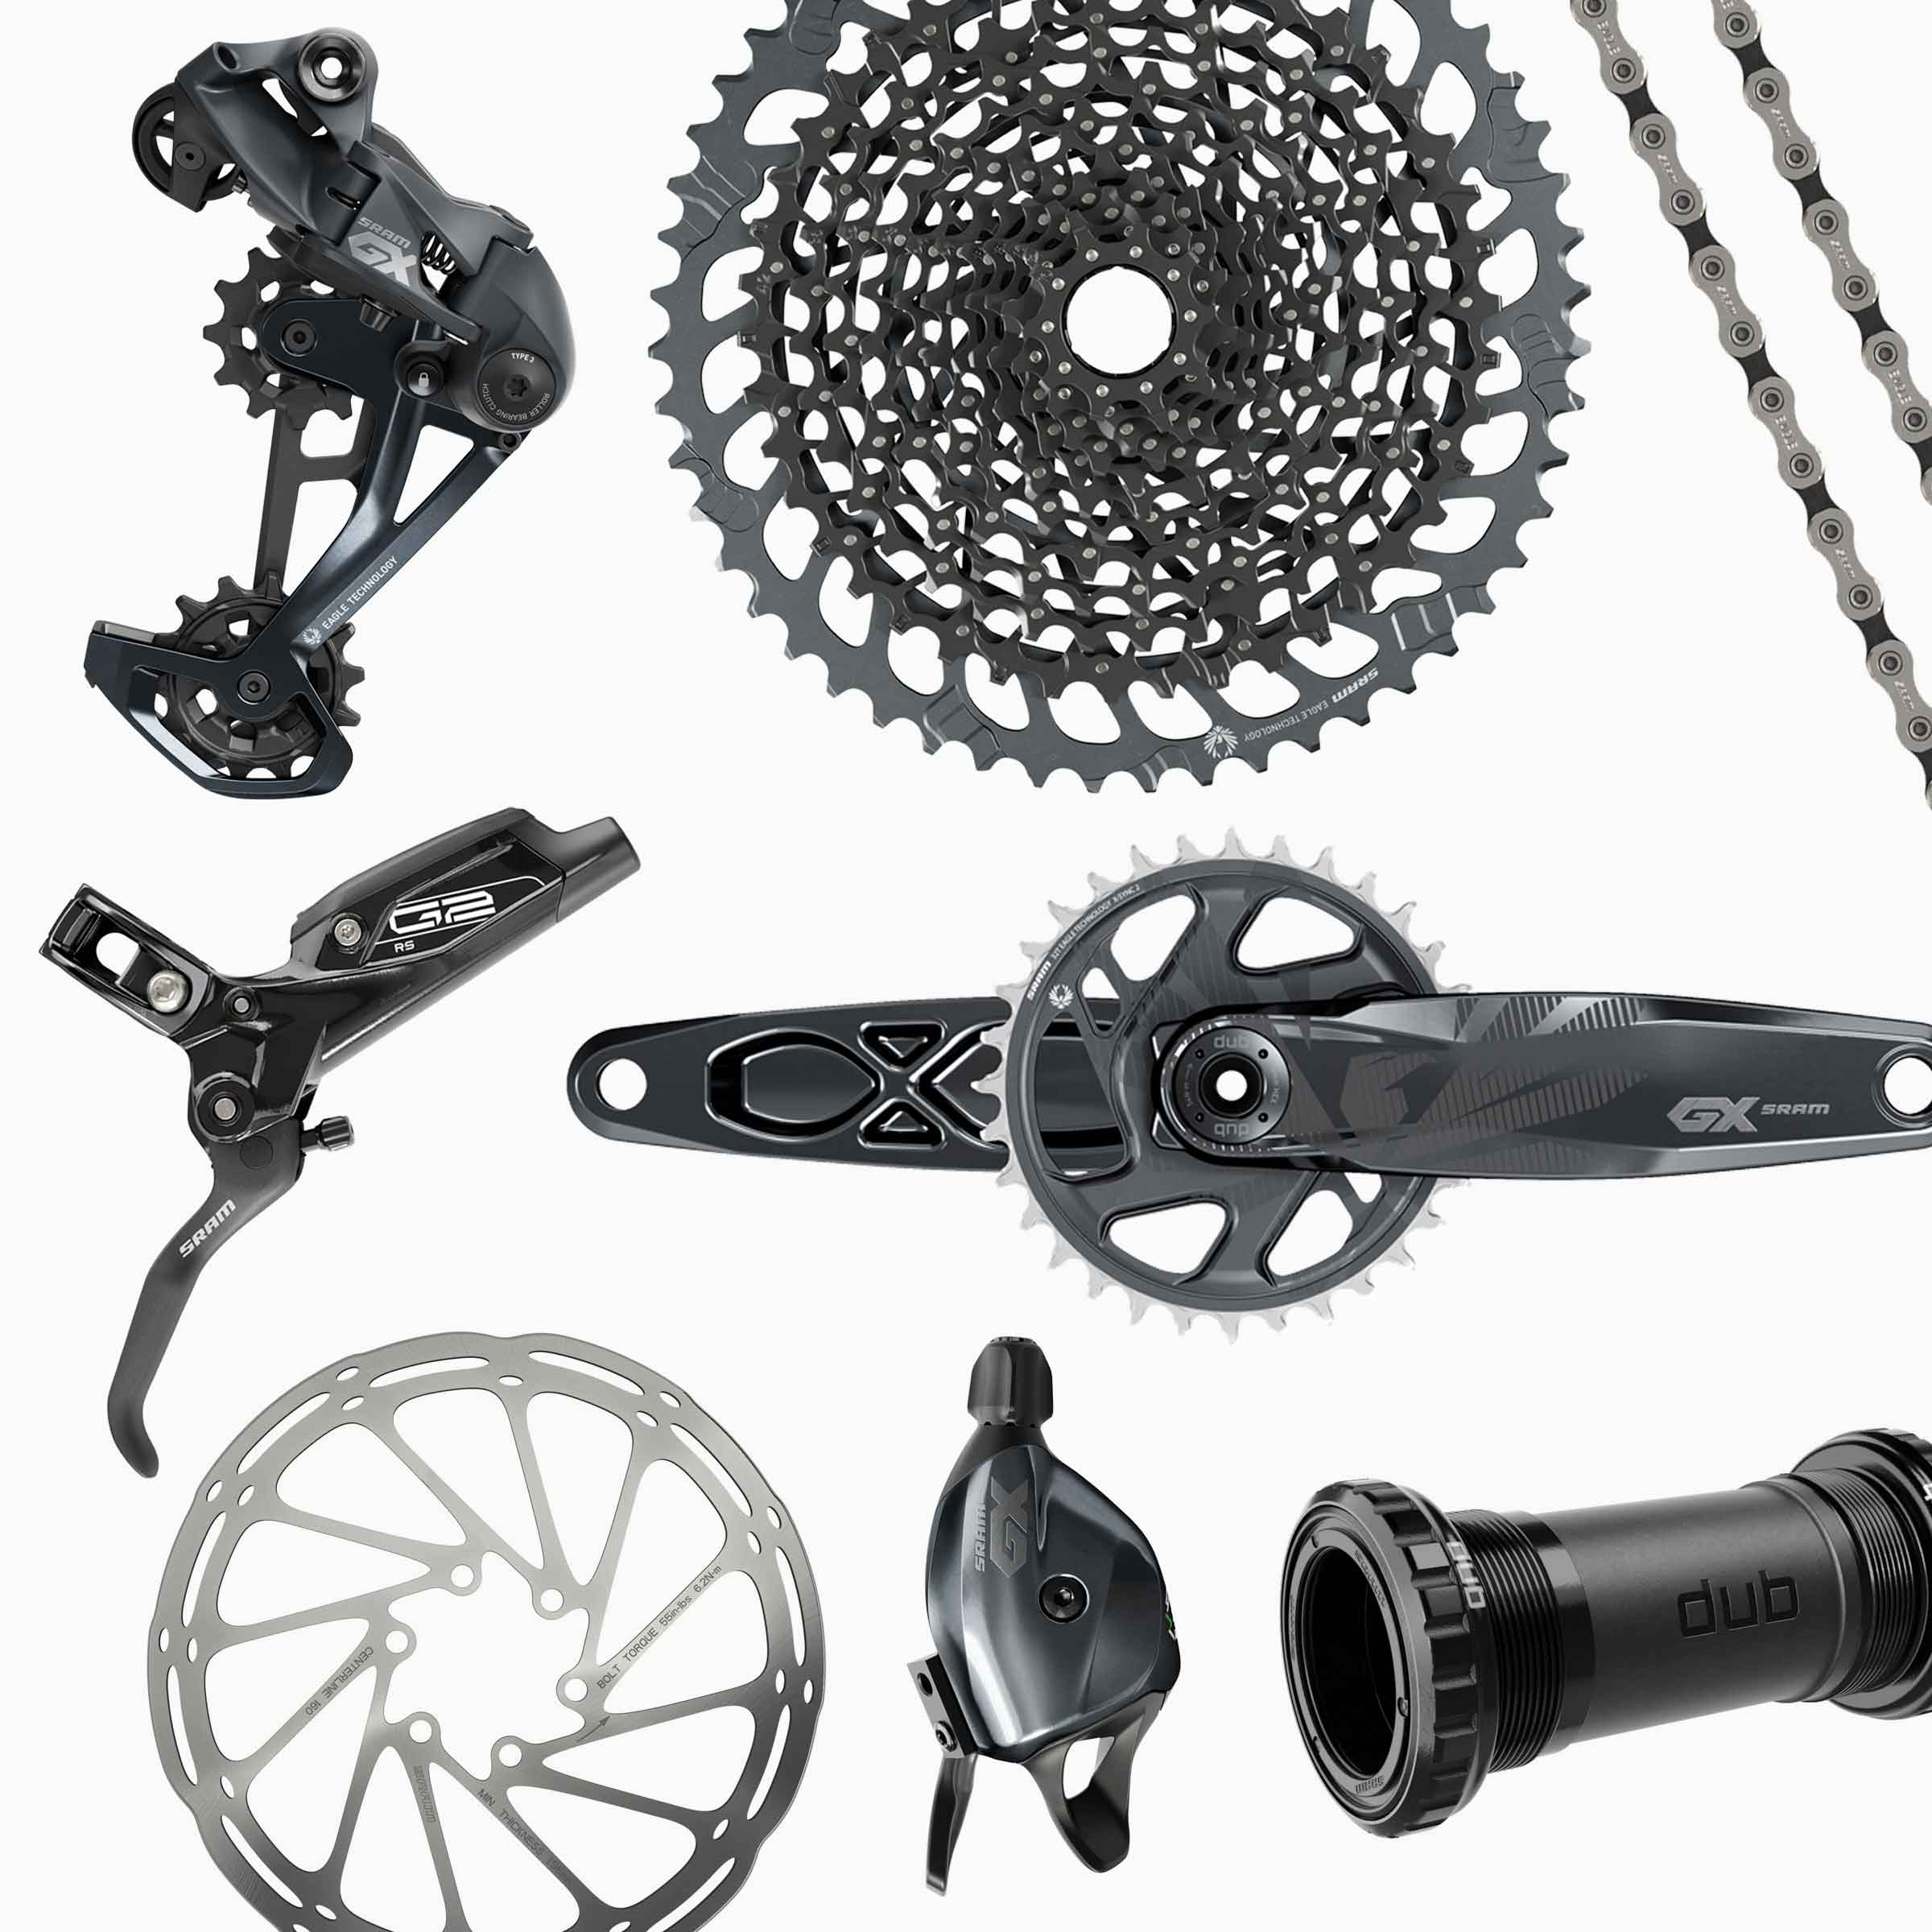 SRAM GX Eagle Base Kit - SB+